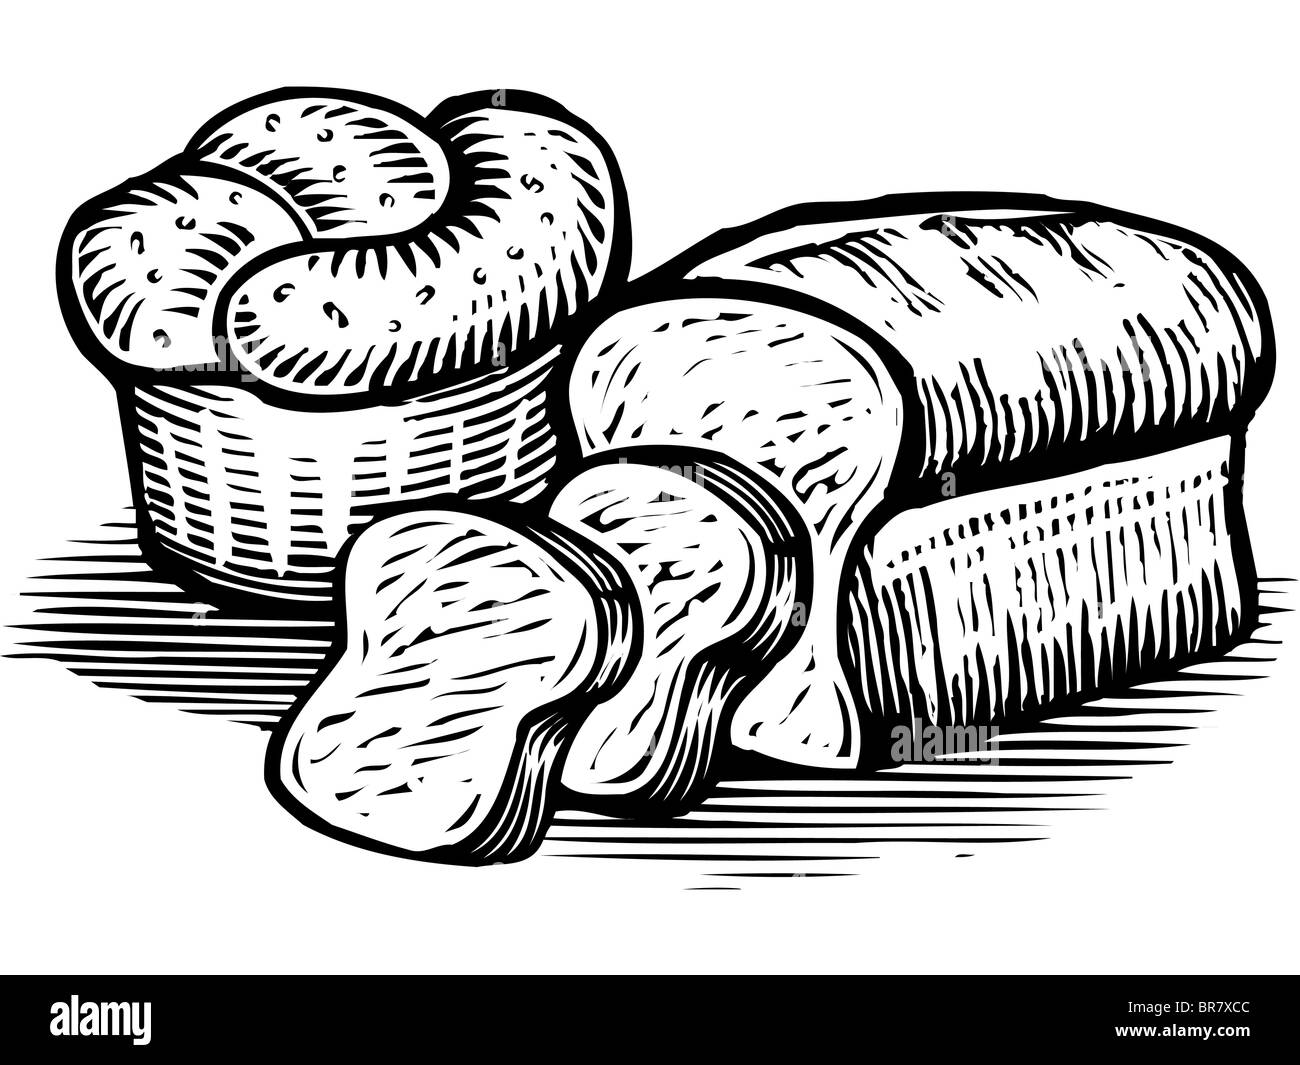 Uncategorized Loaf Of Bread Drawing a drawing of loaves bread illustrated in black and white stock white